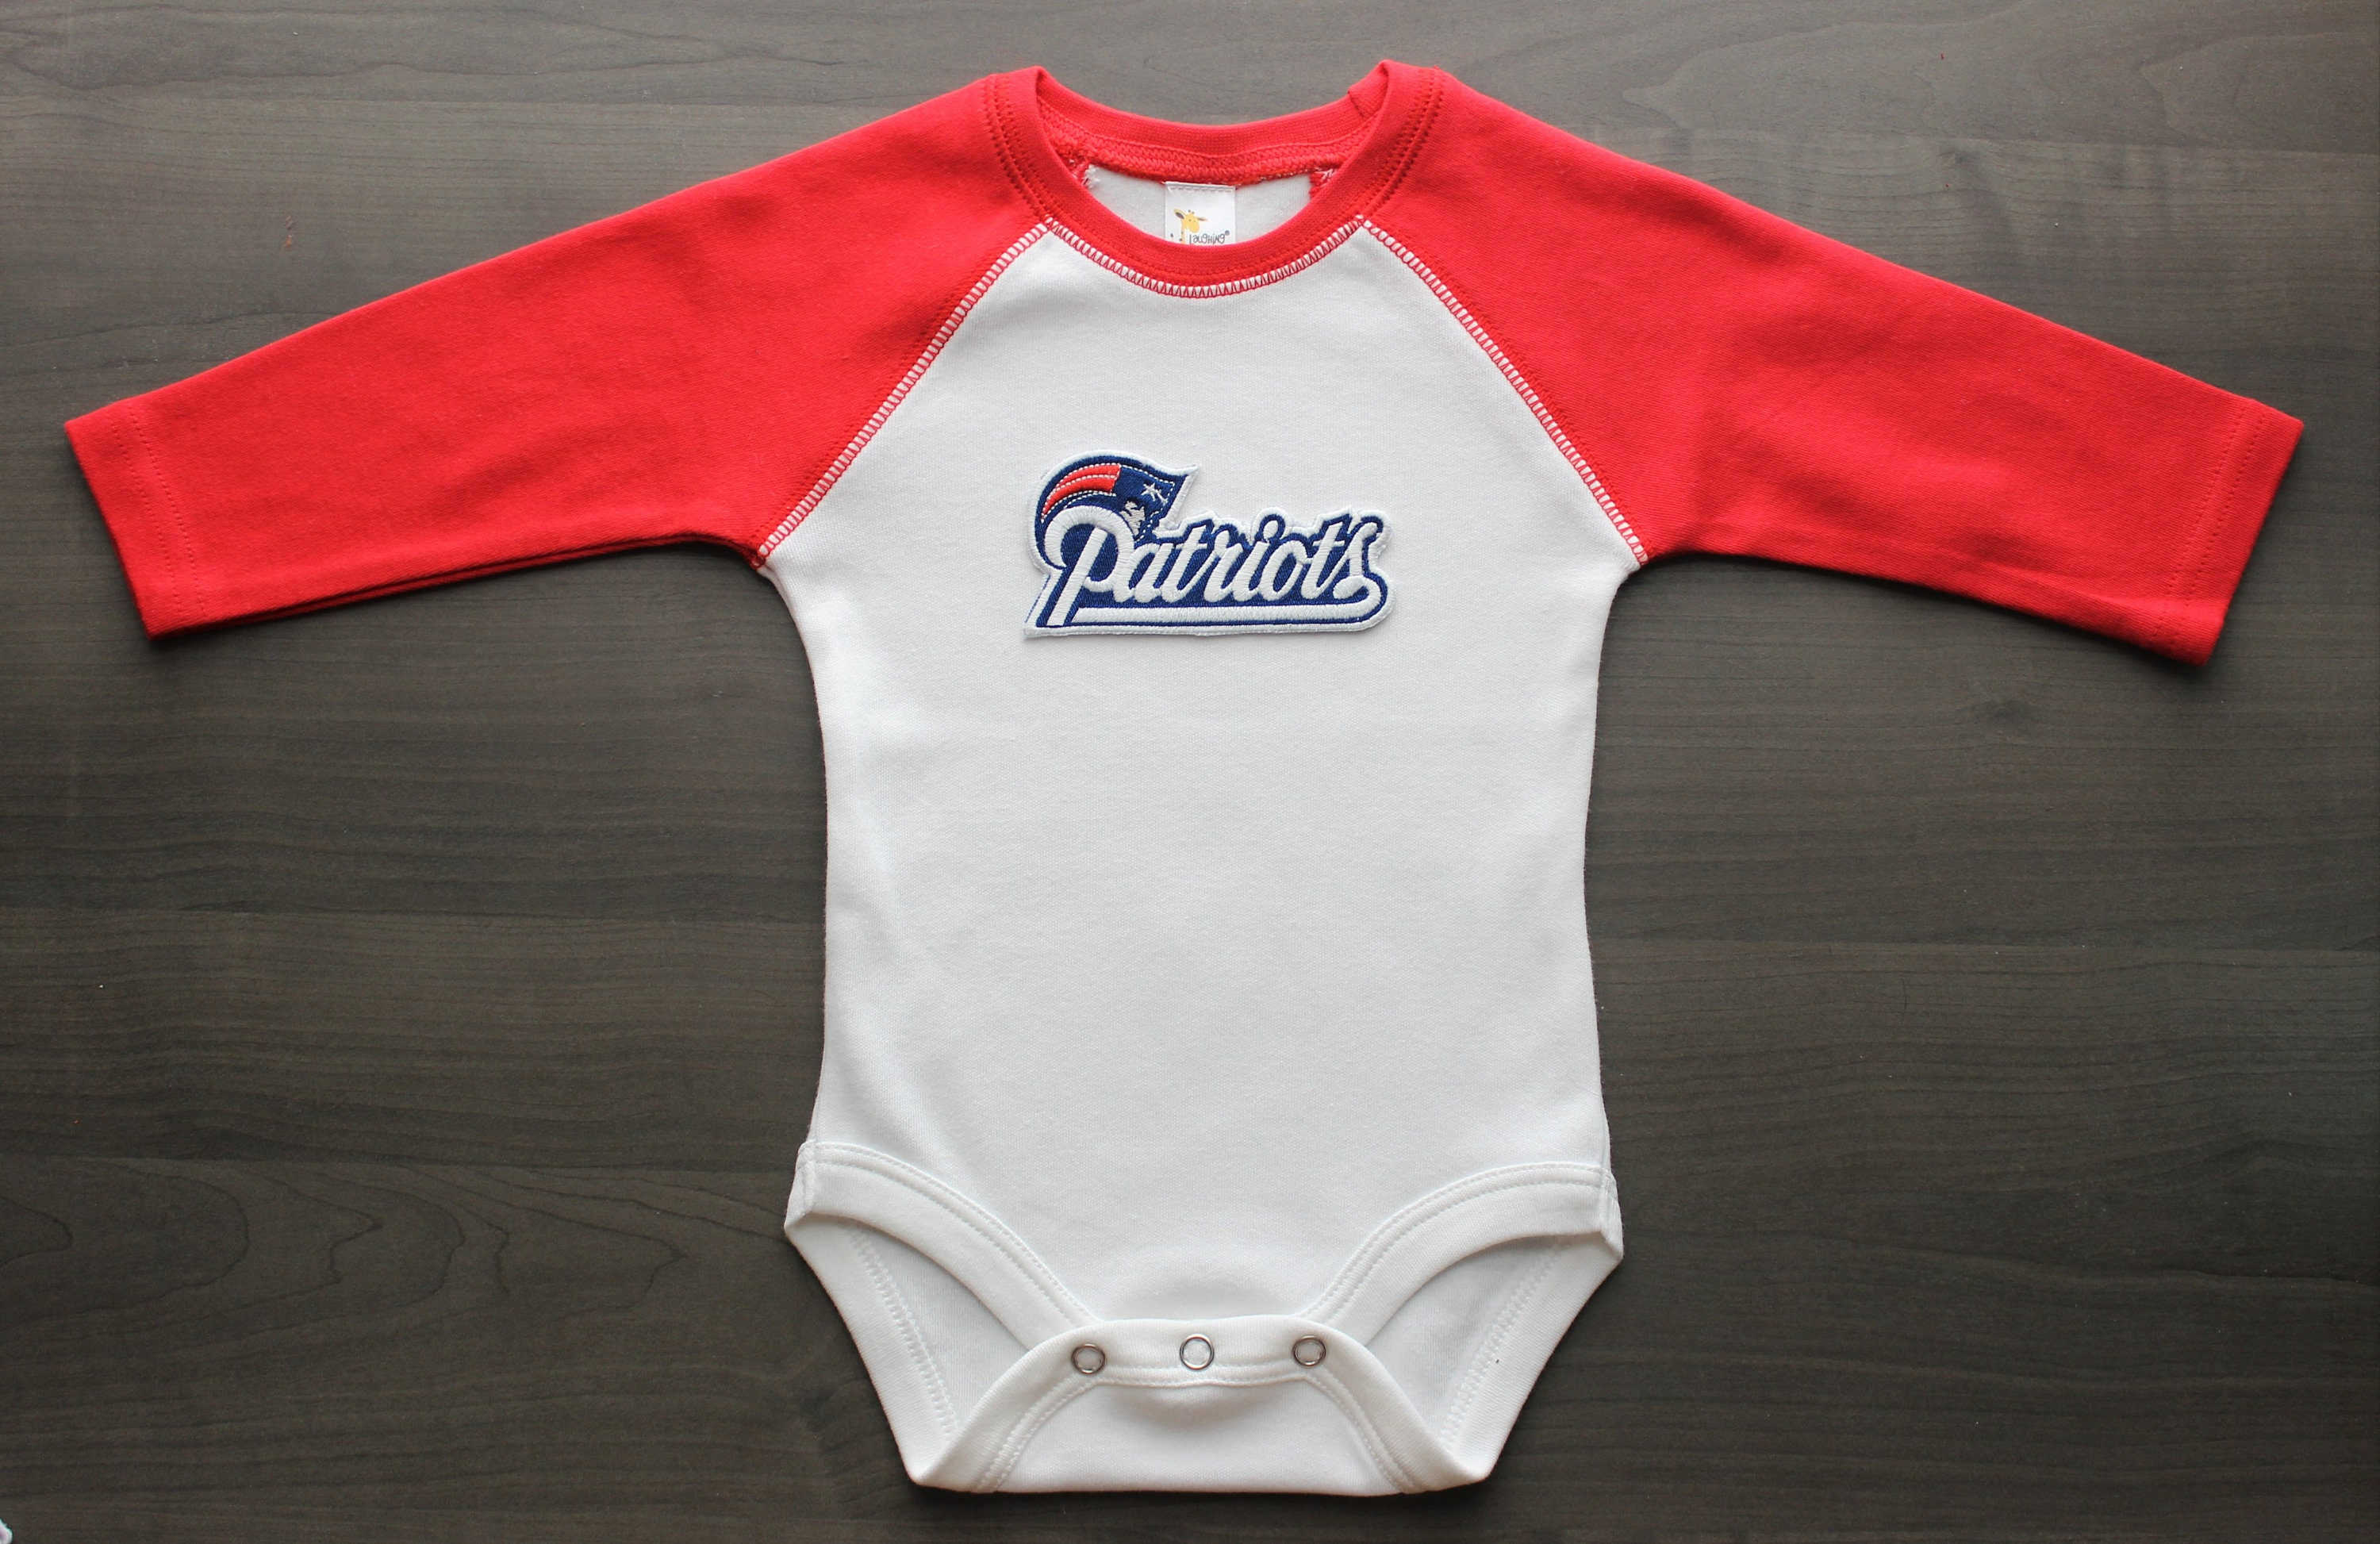 new style 9e9ad 9395d Patriots baby shirt, New England Patriots inspired baby raglan bodysuit,  Patriots outfit